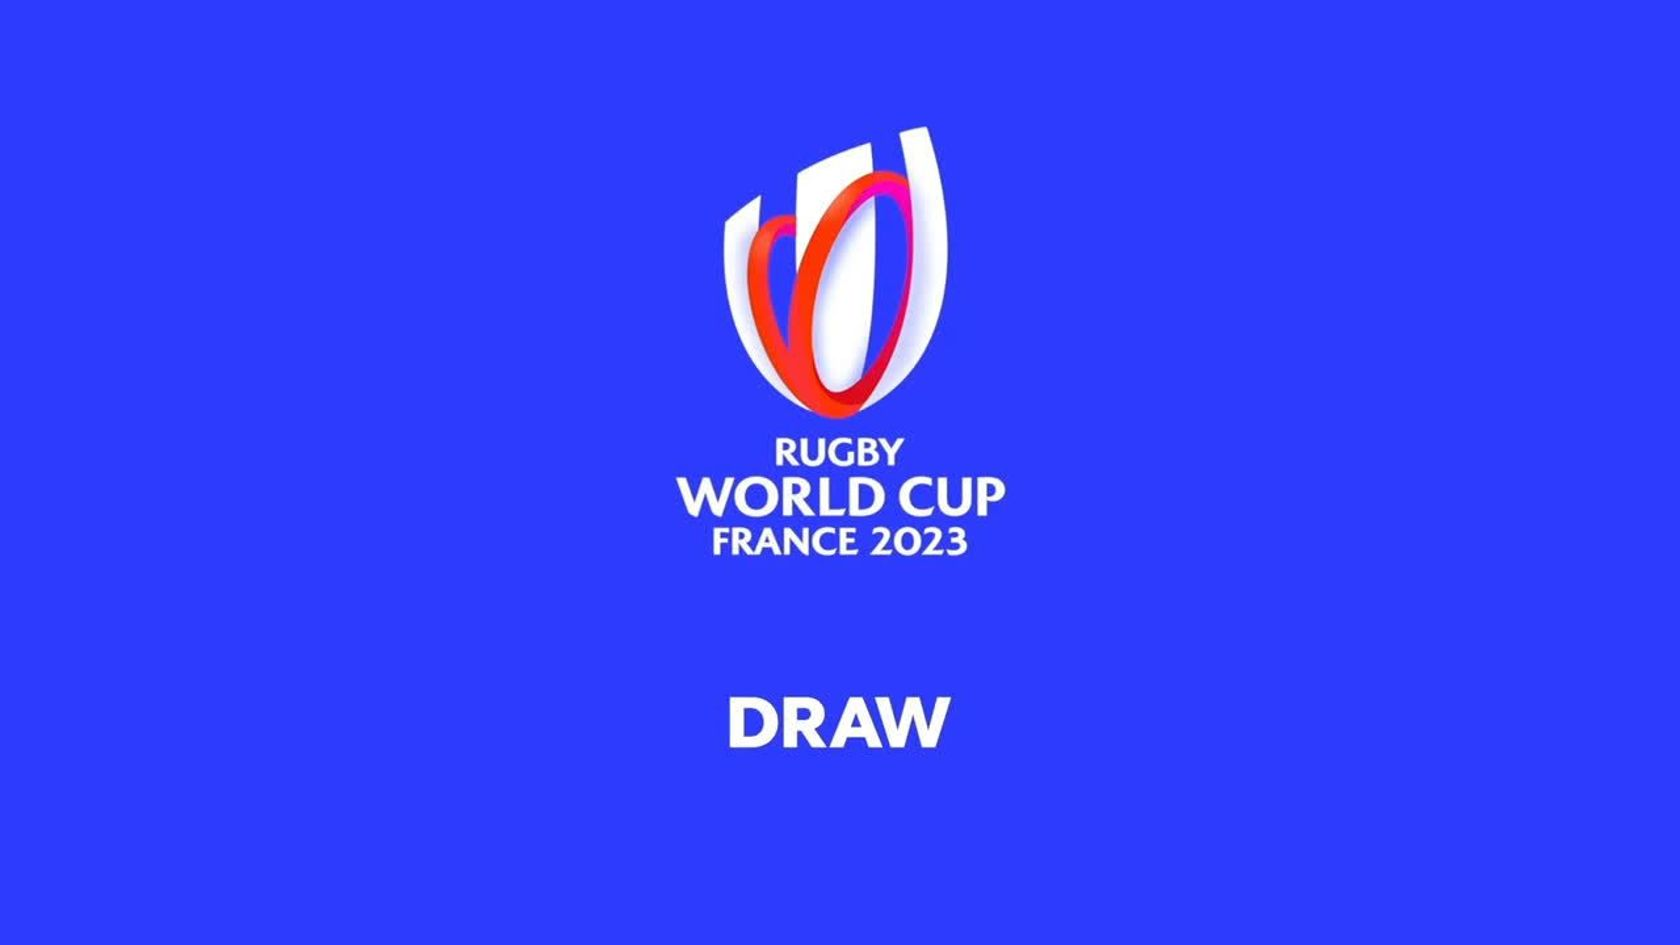 Rugby World Cup 2023